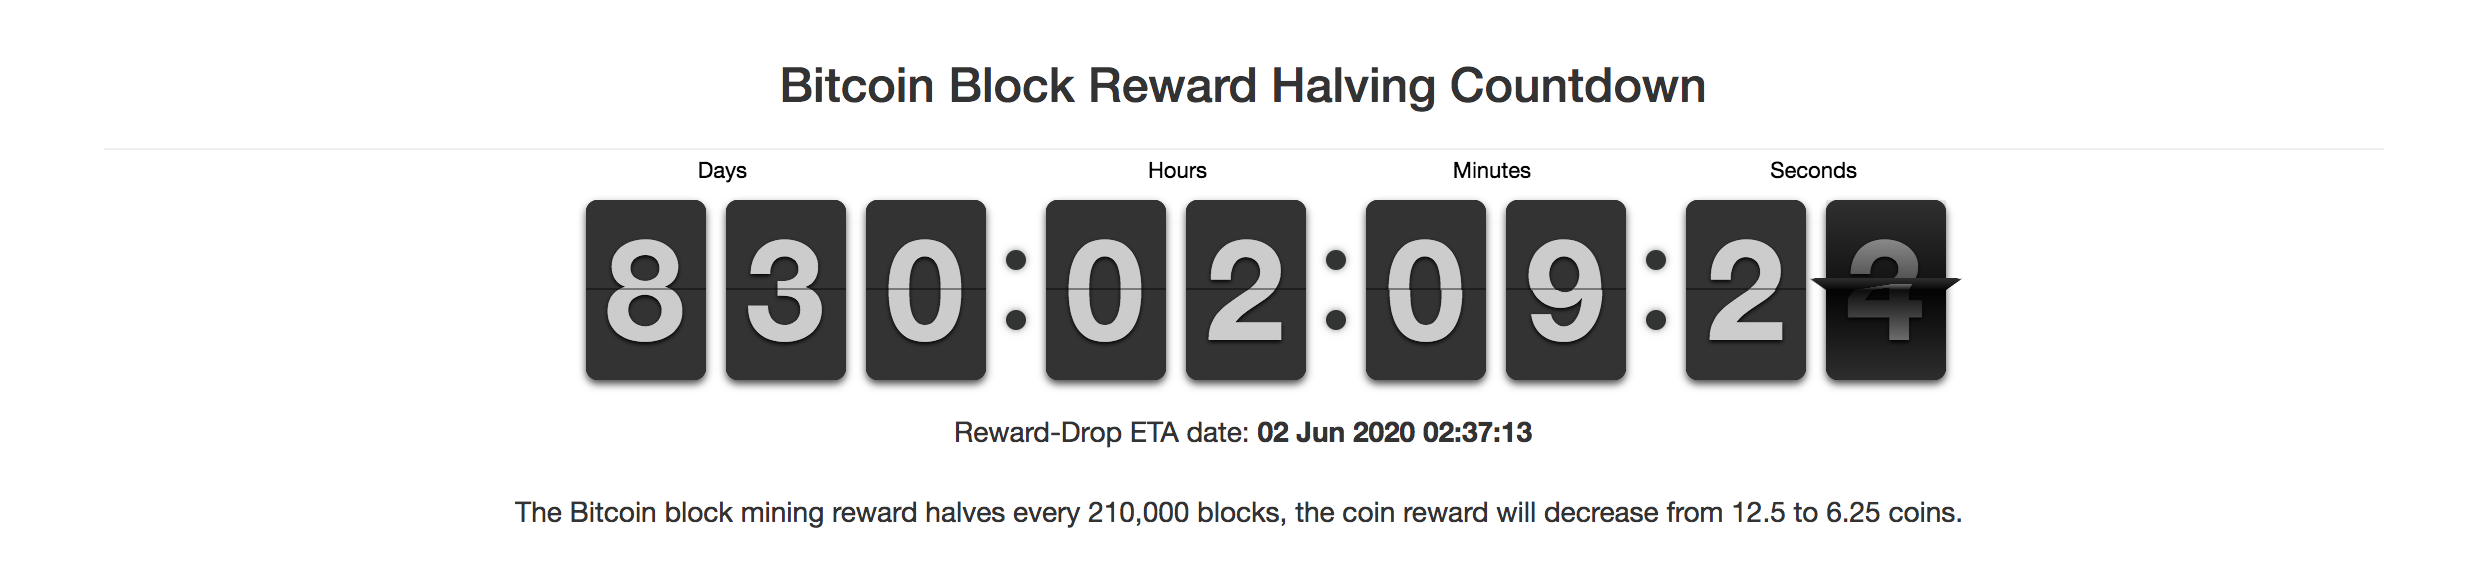 When will miners be disincentivized to mine bitcoin?